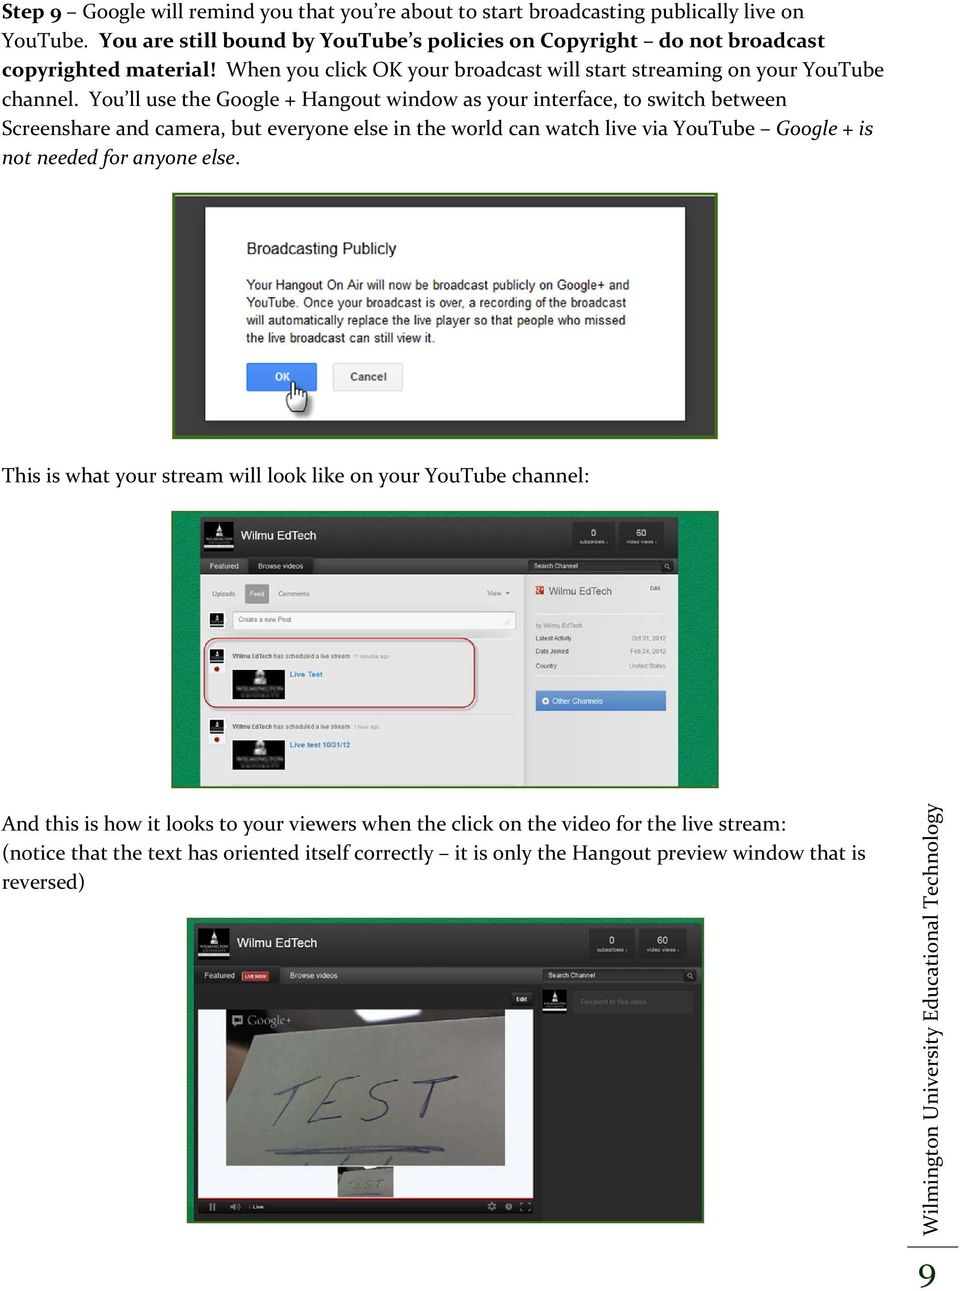 You ll use the Google + Hangout window as your interface, to switch between Screenshare and camera, but everyone else in the world can watch live via YouTube Google + is not needed